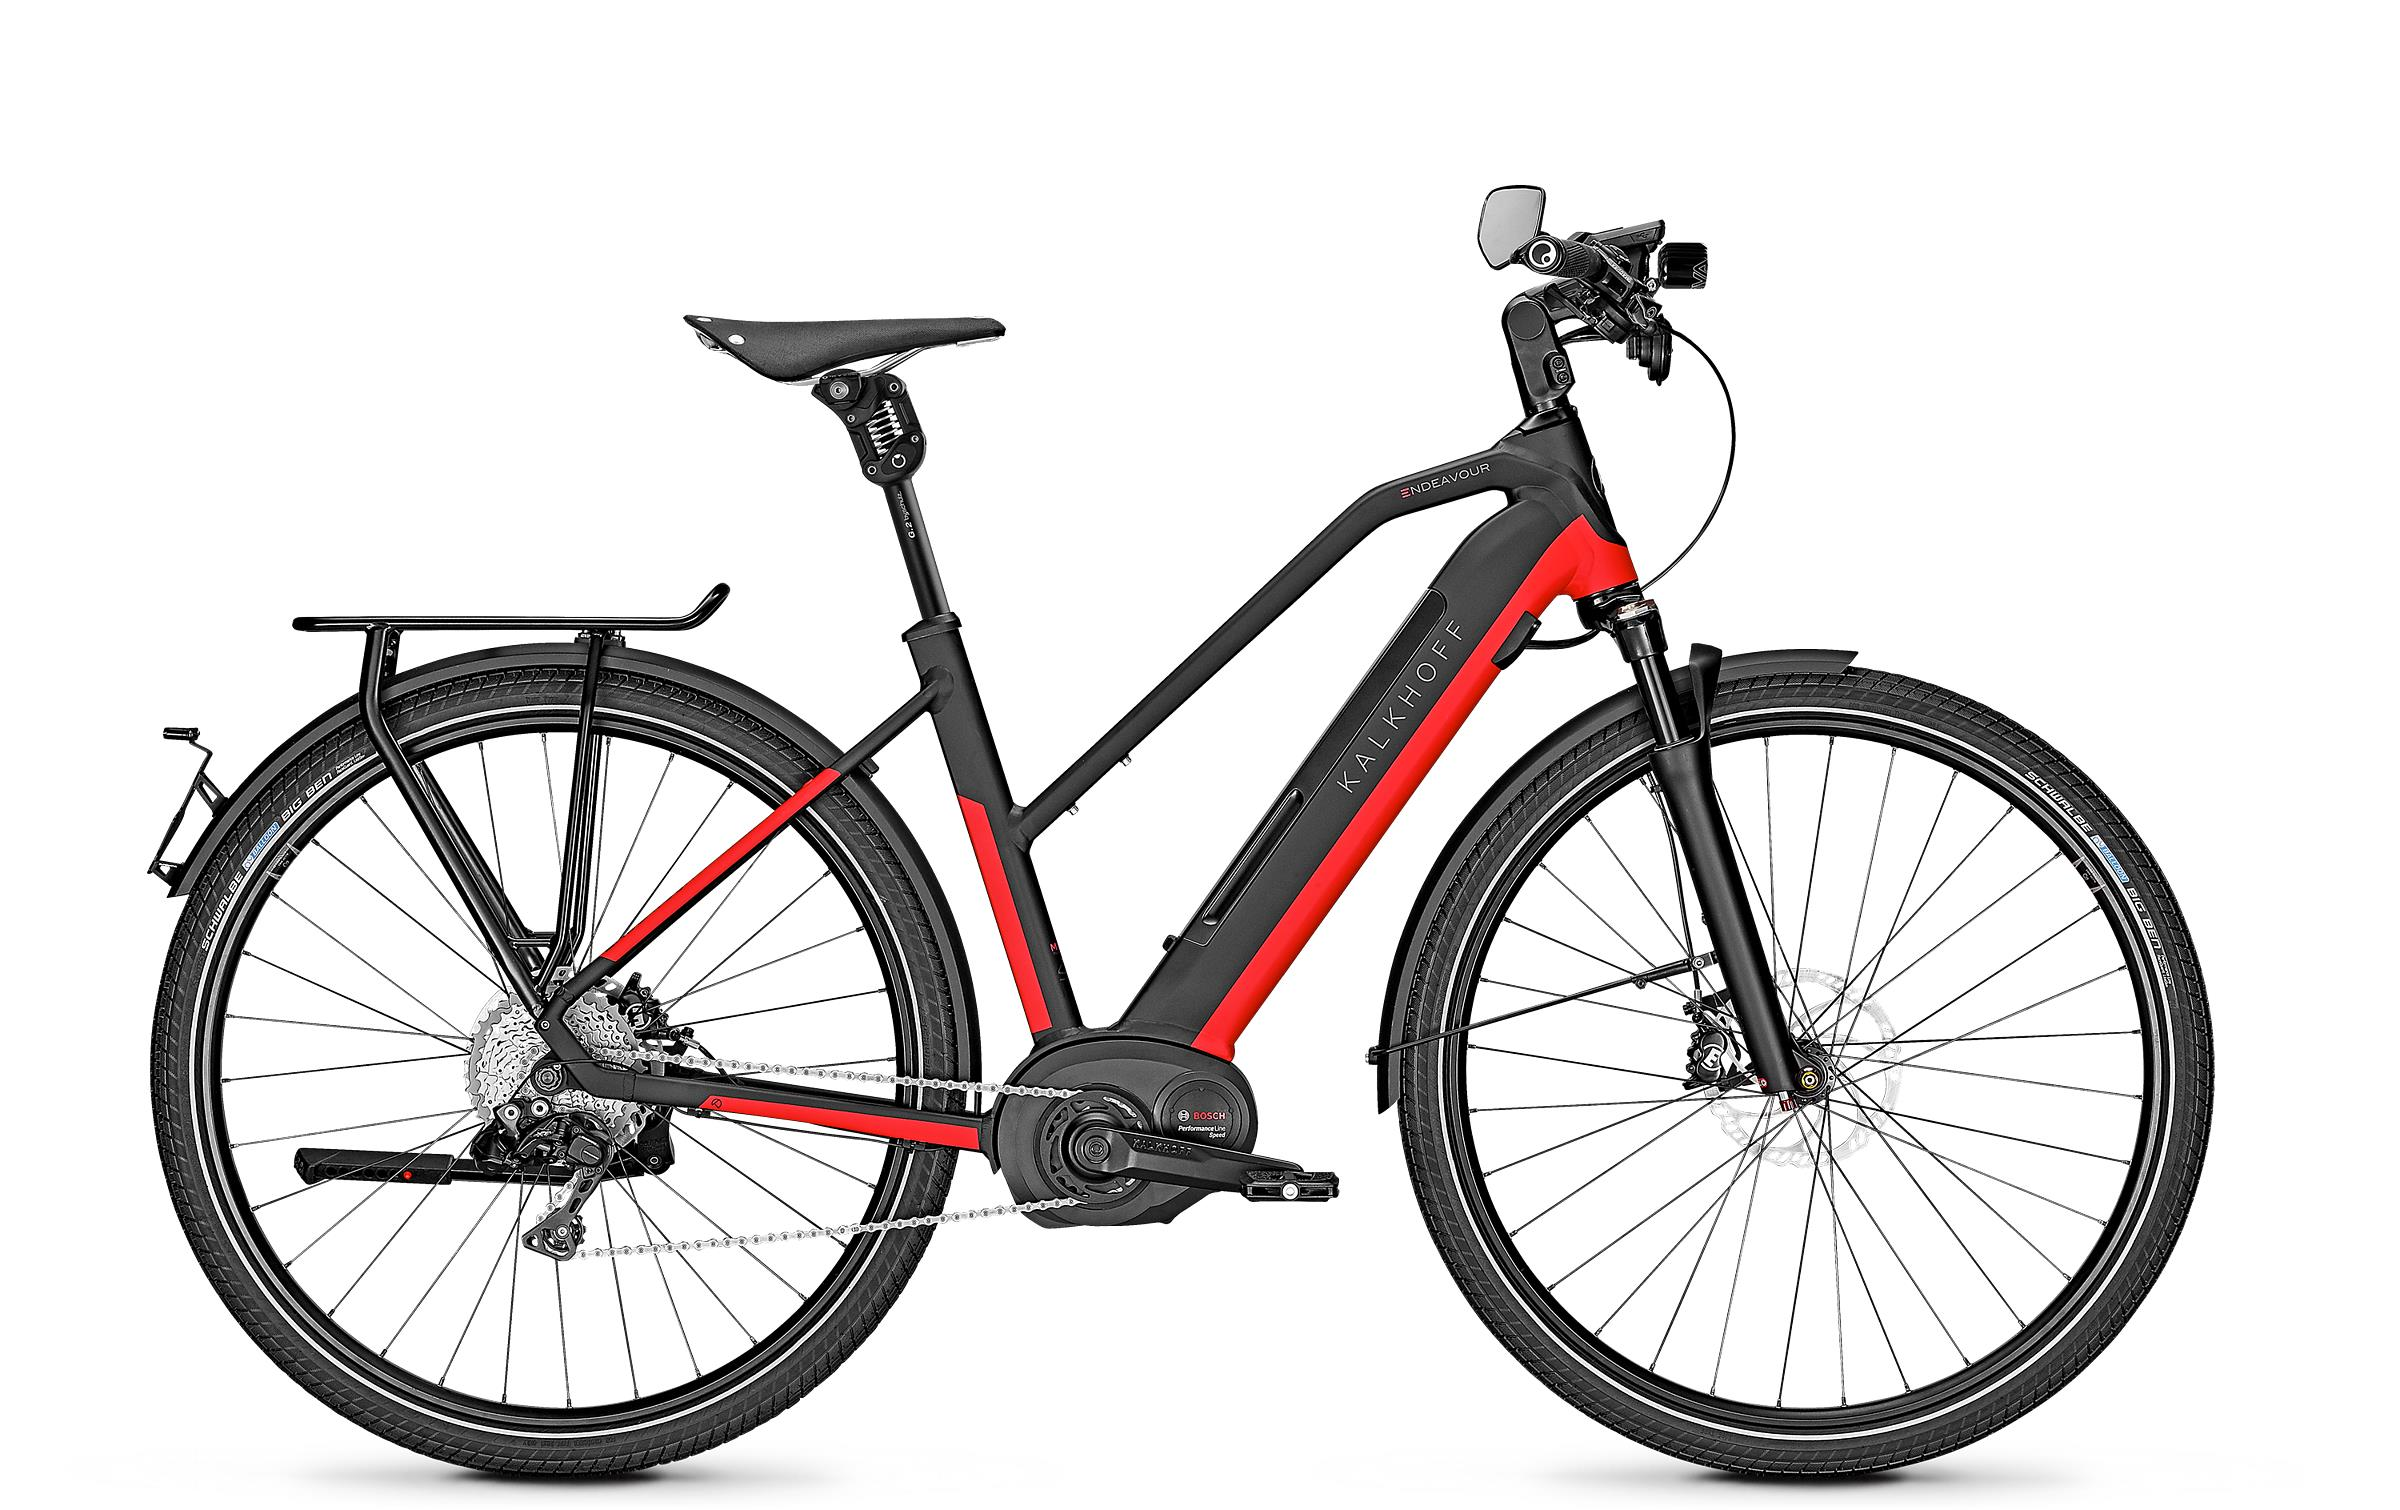 Kalkhoff ENDEAVOUR 5.B EXCITE 45 - 28 Trapez 482 Wh -  magicblack/firered glossy 2019